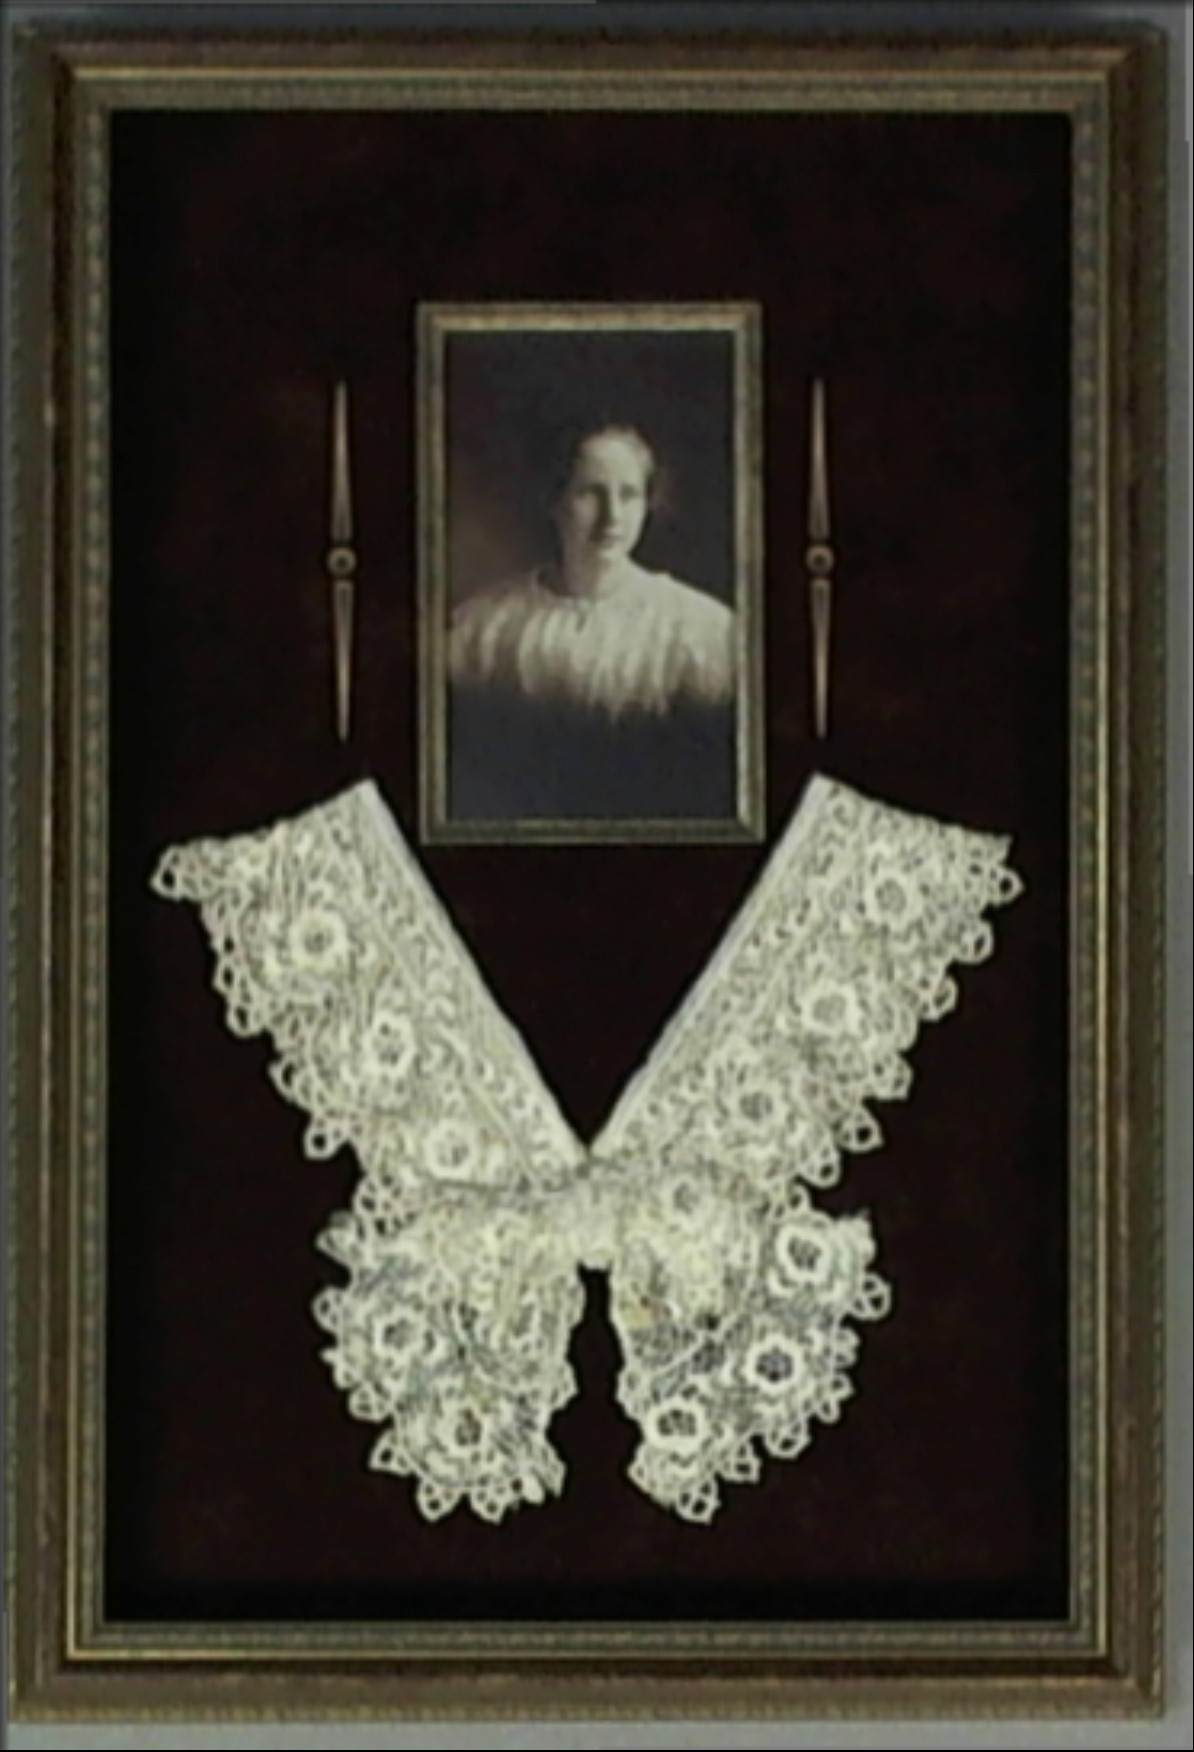 shadowbox ideas - framed antique family photo with crochet collar